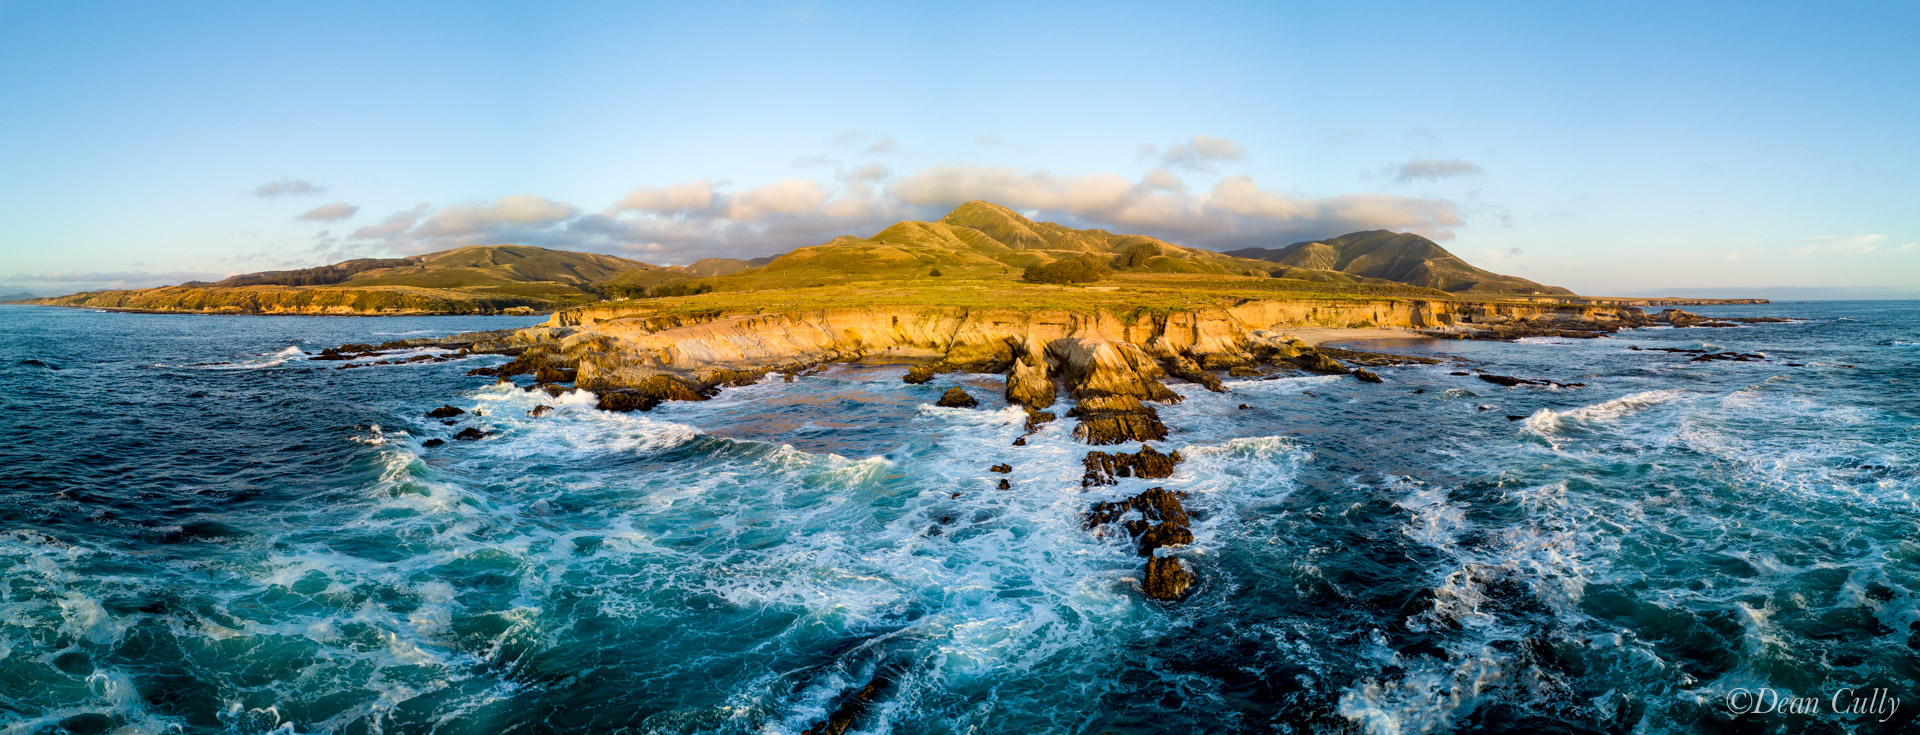 montana_de_oro_headlands_0389